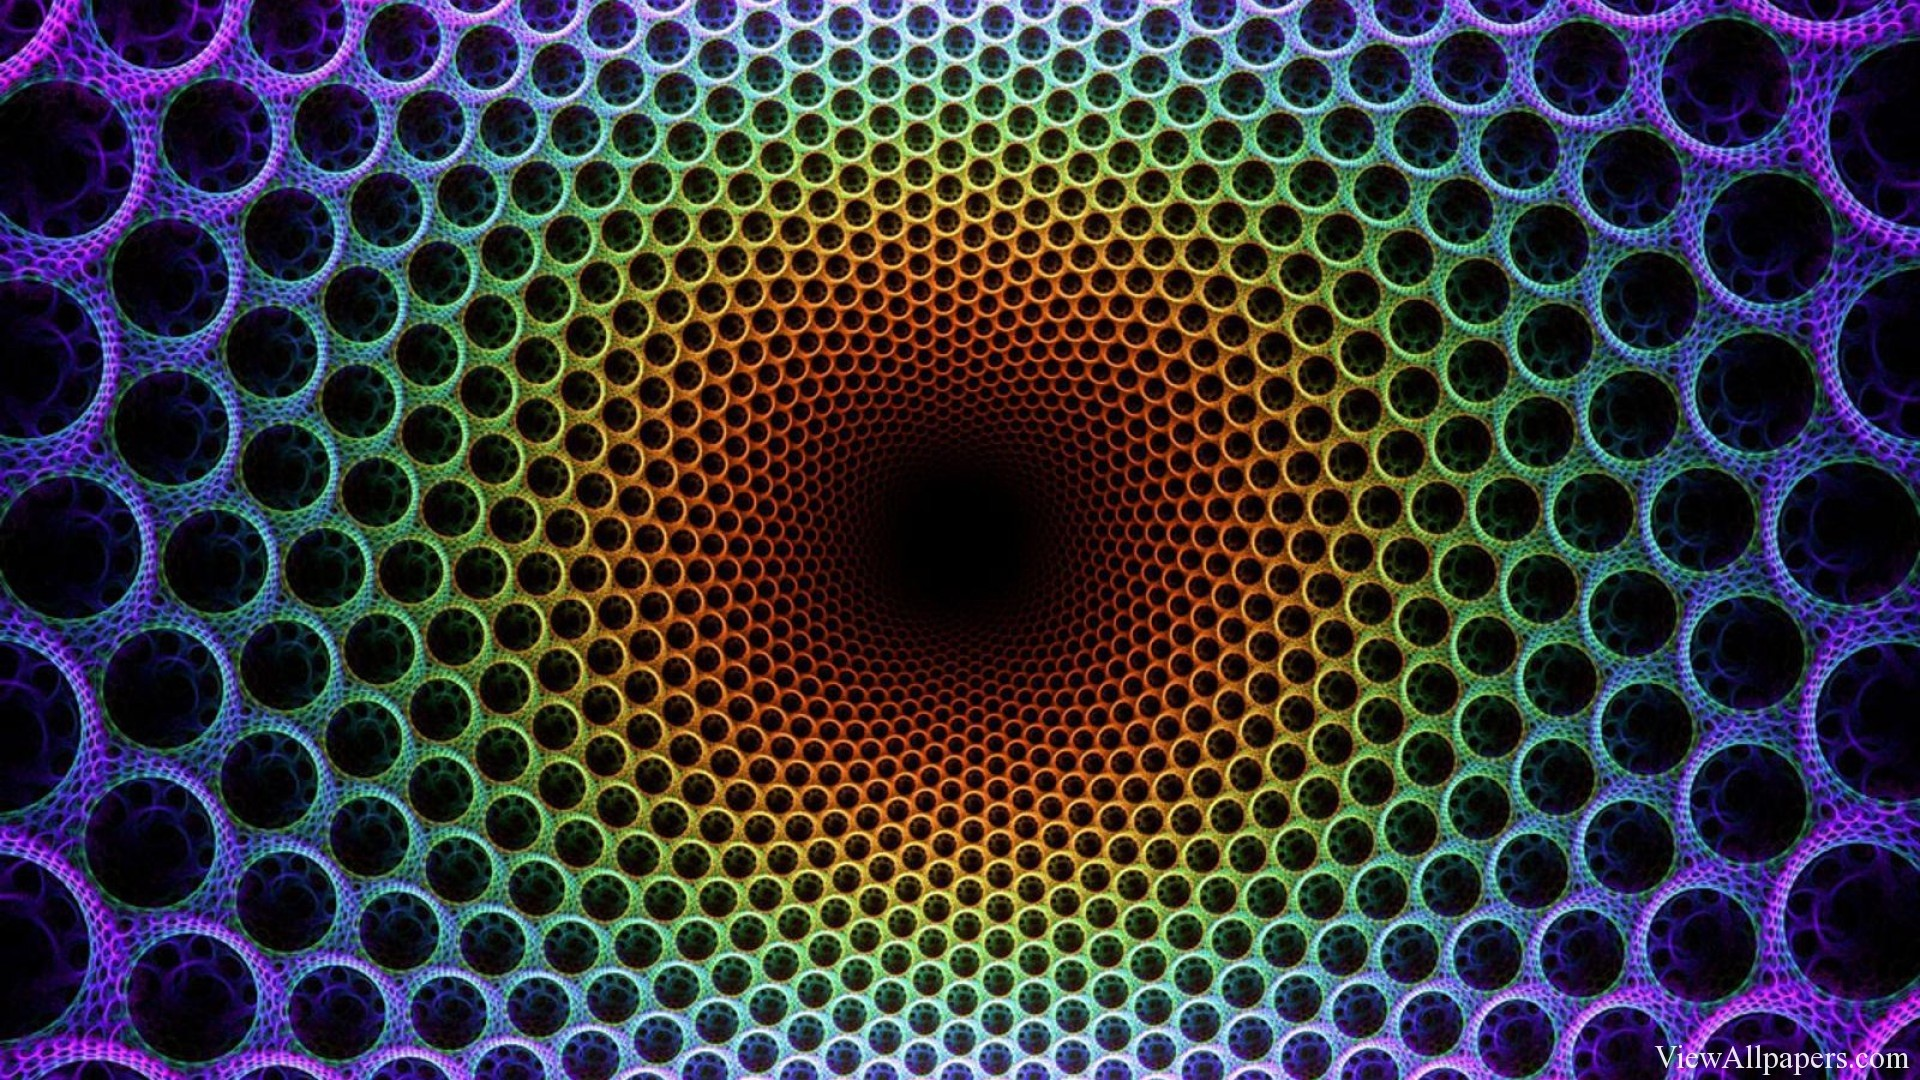 Trippy Wallpapers for Iphone Iphone plus Iphone plus   HD Wallpapers    Pinterest   Trippy wallpaper, Trippy and 3d wallpaper